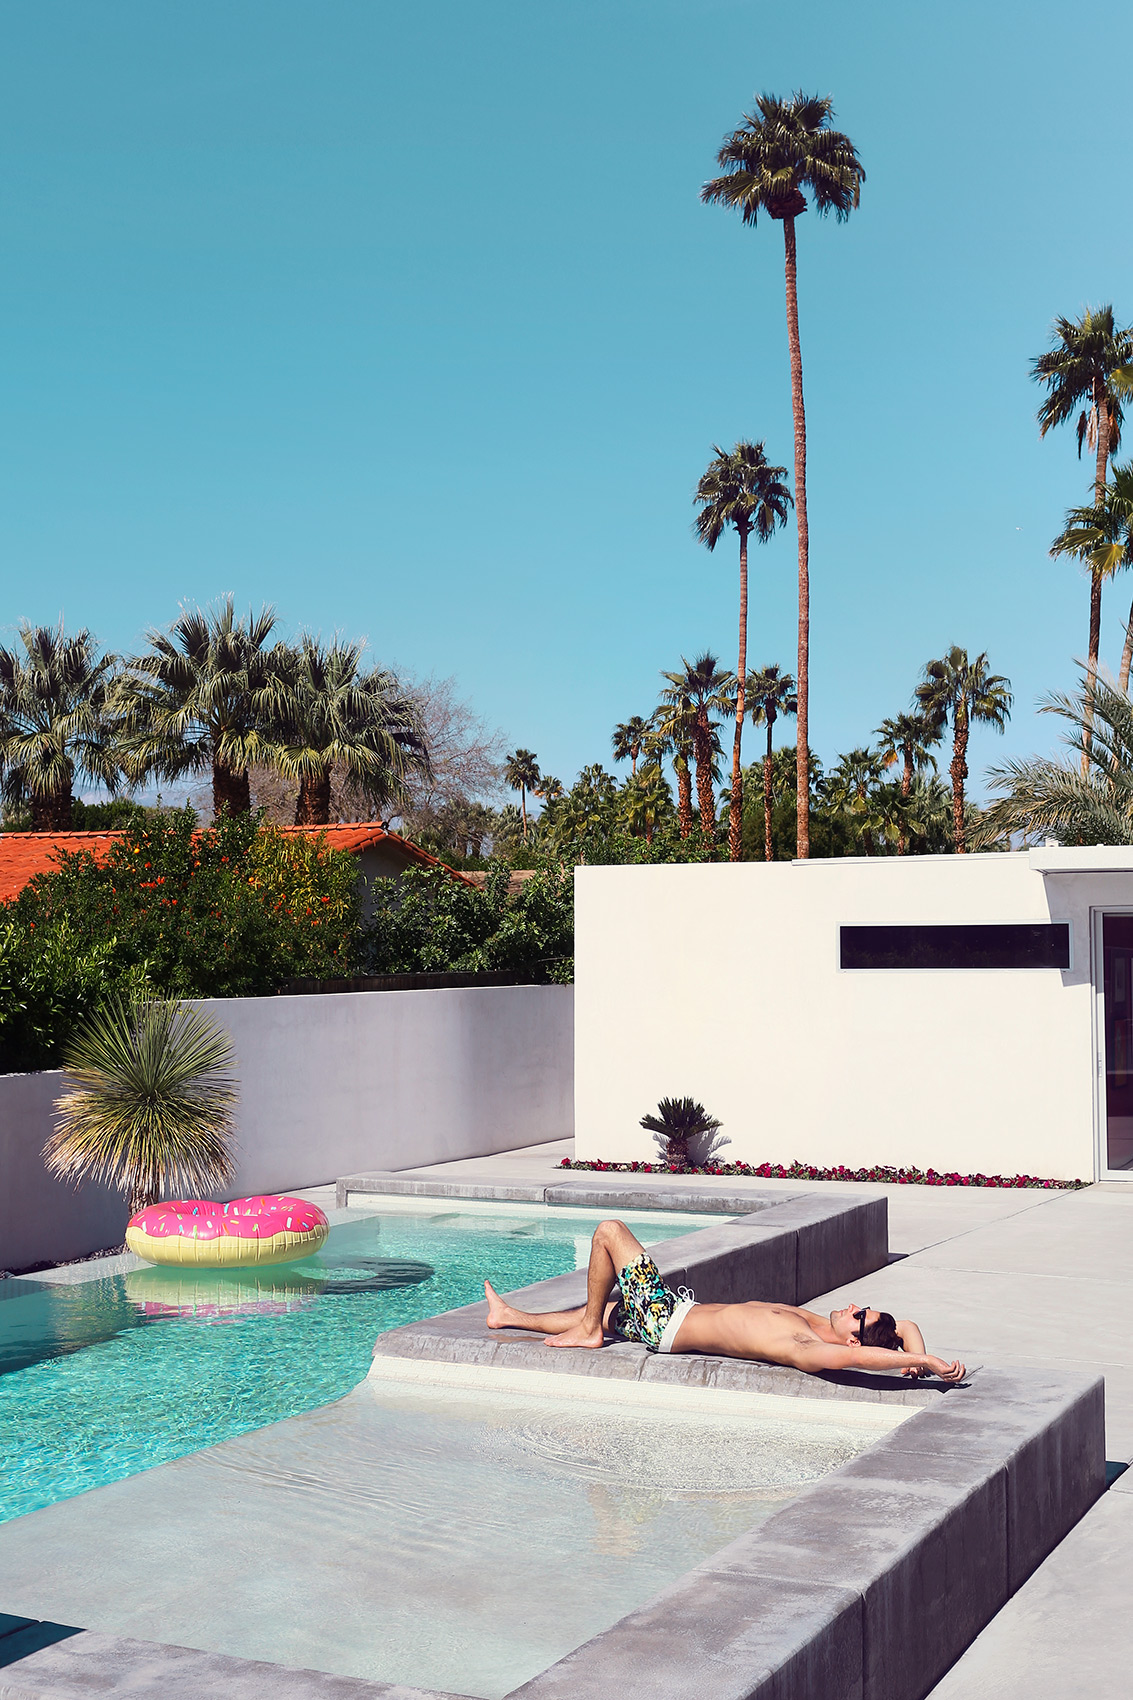 Kimberly_Genevieve_Palm_Springs_Style_61